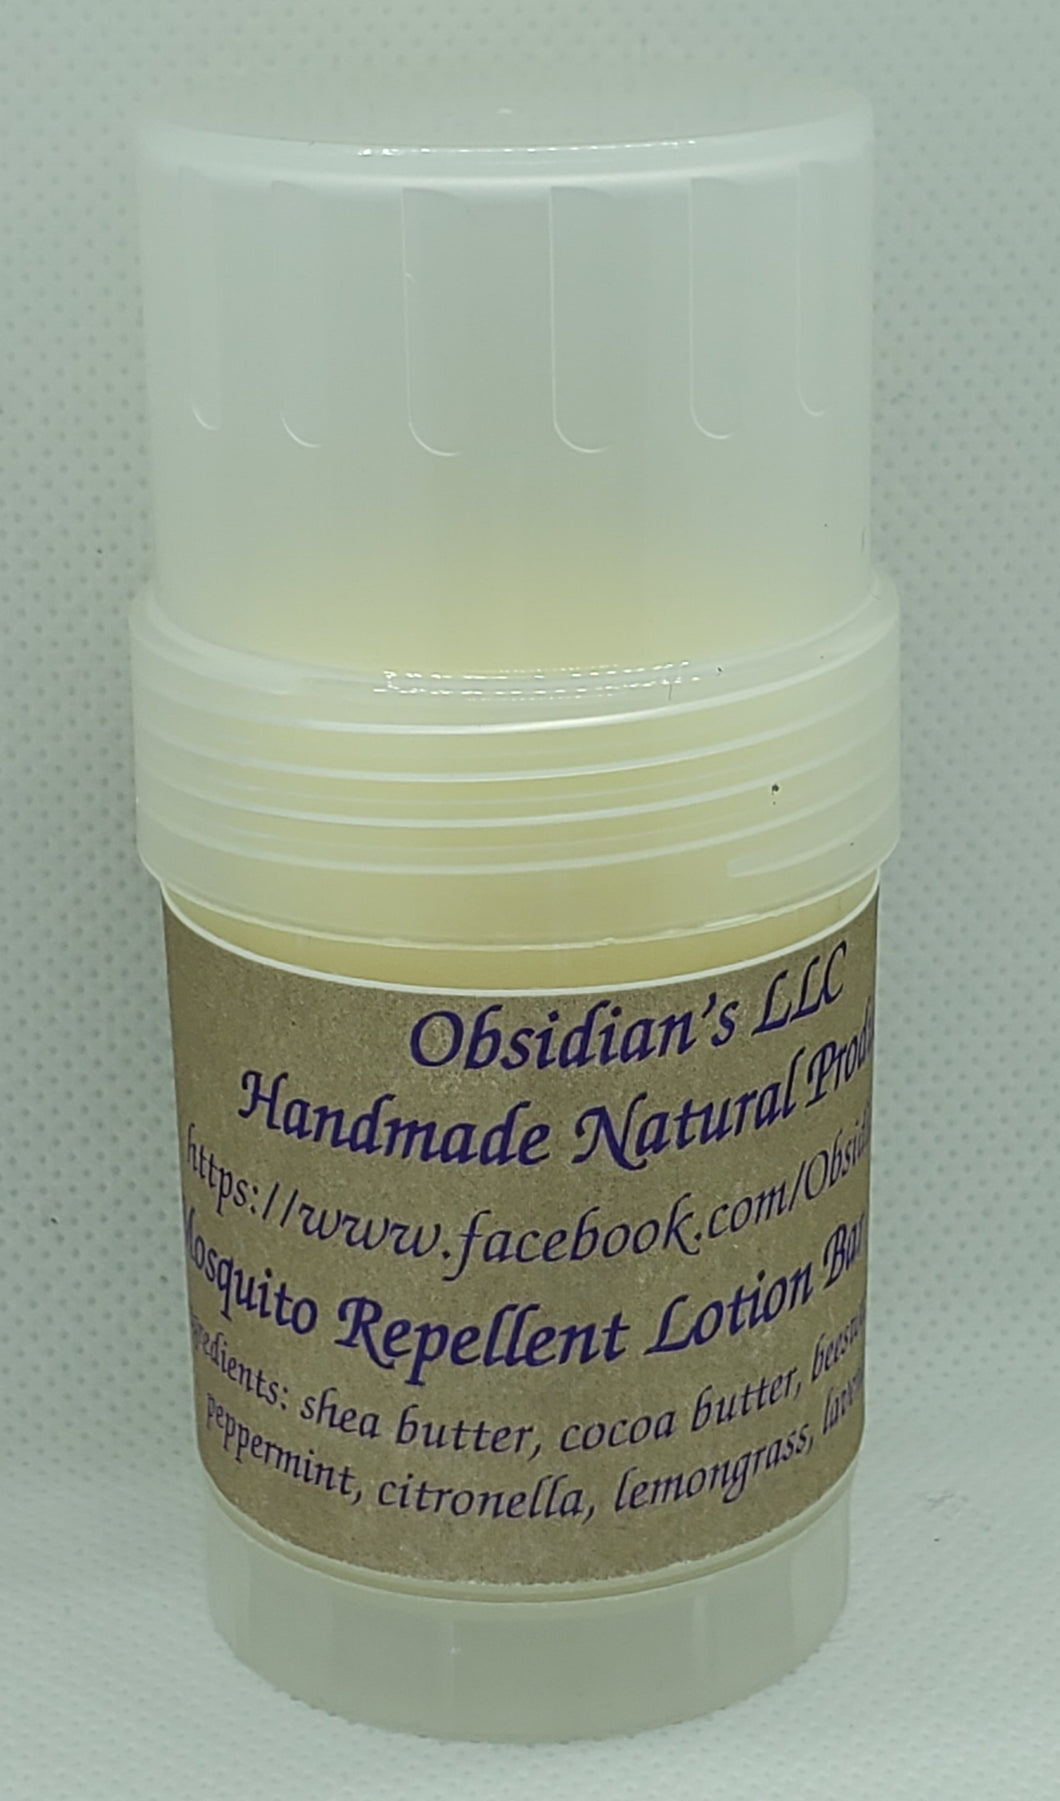 Mosquito Repellent Lotion Bar - Obsidian's LLC